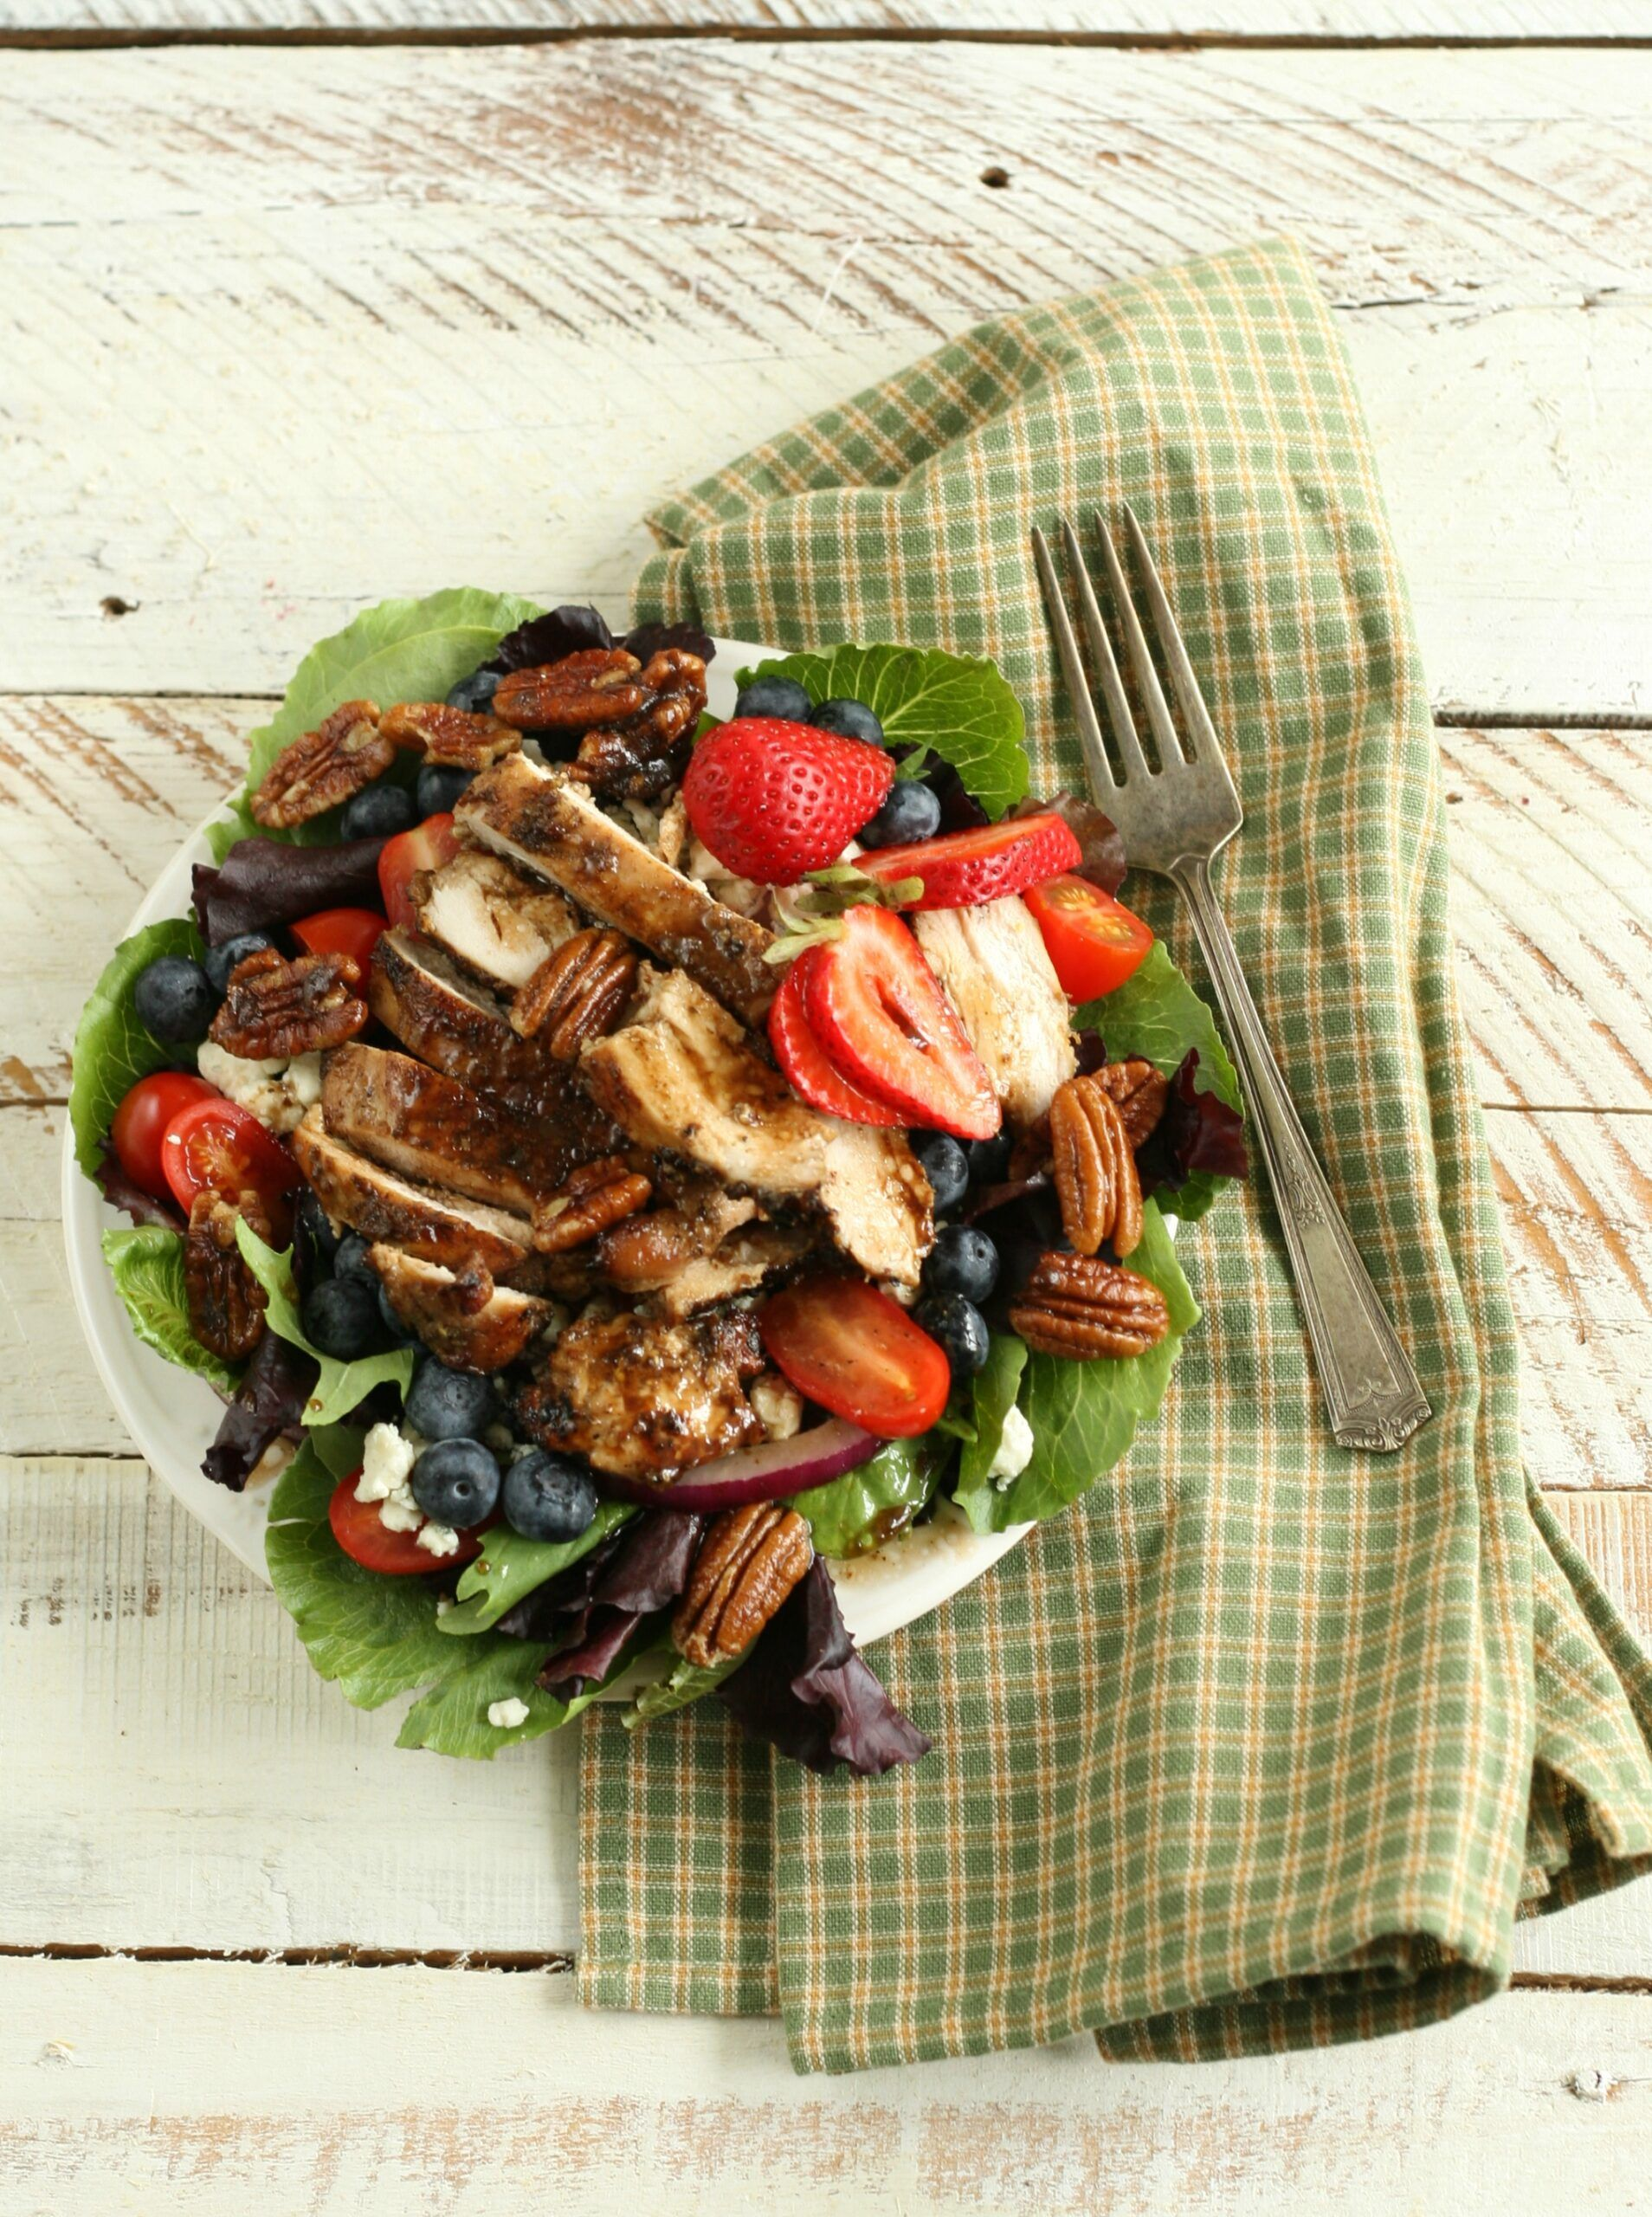 Blueberry Strawberry Salad with Candied Pecans #recipe #foodblogger #homemade #gardensalad